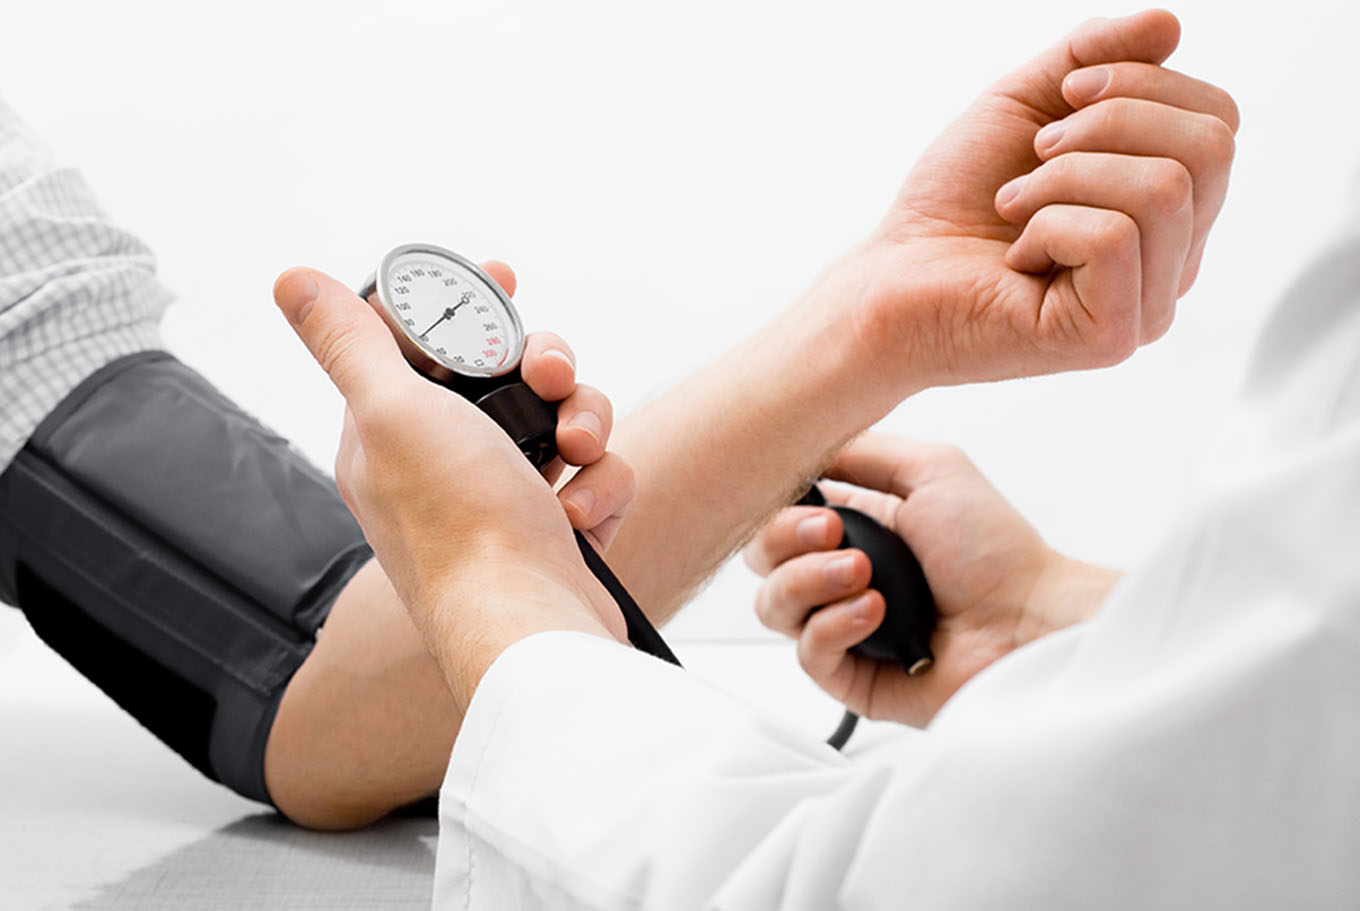 Types and diseases related to hypertension